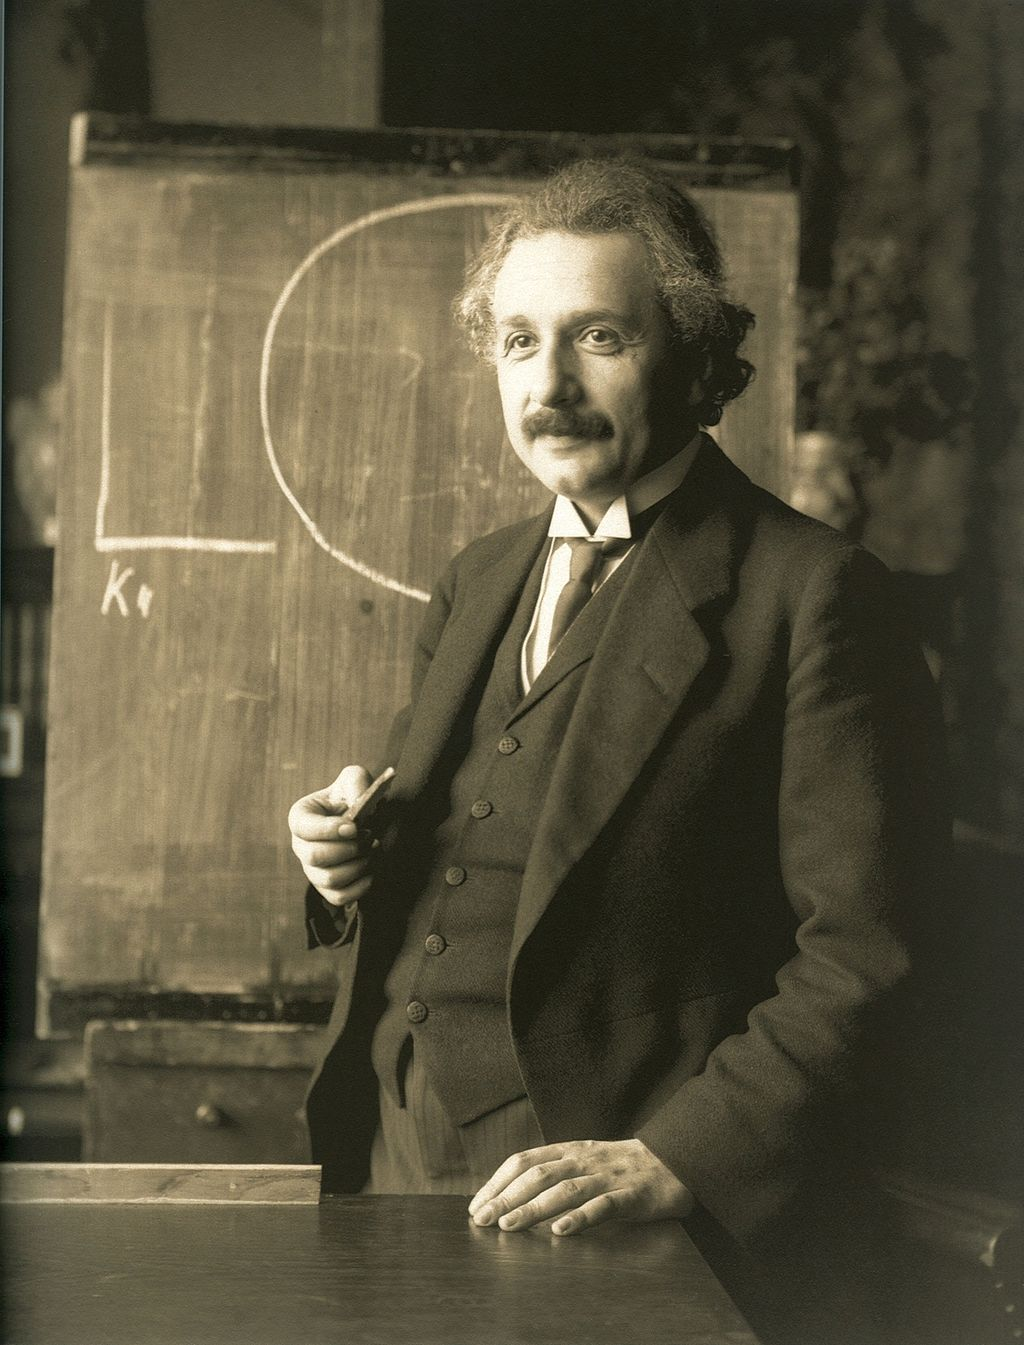 File general gary edward luck jpeg wikimedia commons - Albert Einstein During A Lecture In Vienna In 1921 By F Schmutzer Source Wikimedia Commons